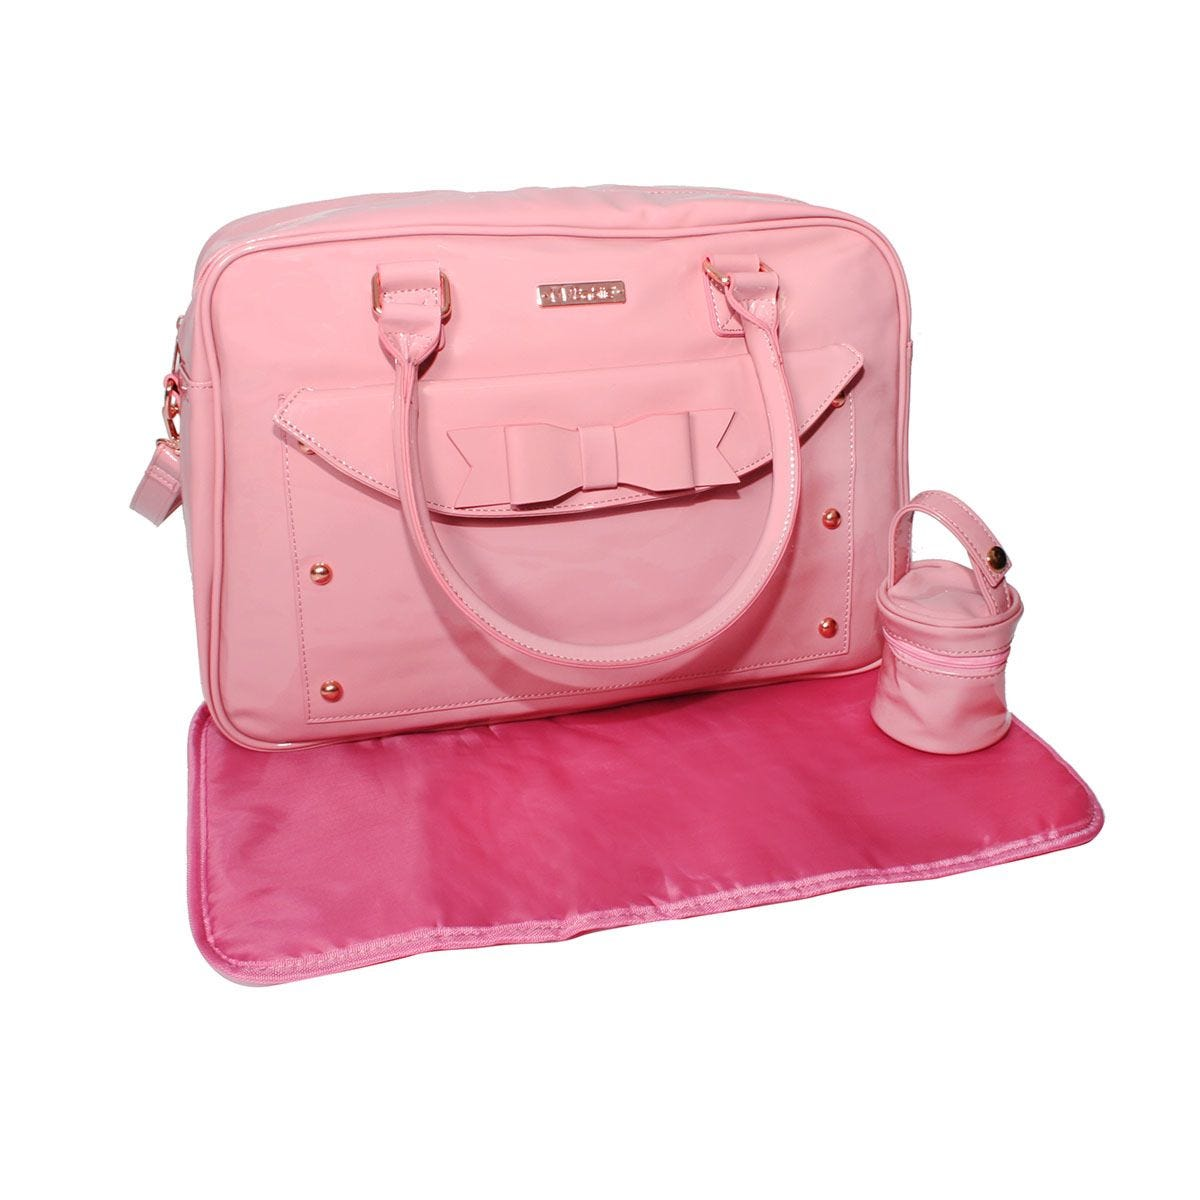 My Babiie Billie Faiers Patent Changing Bag - Pink